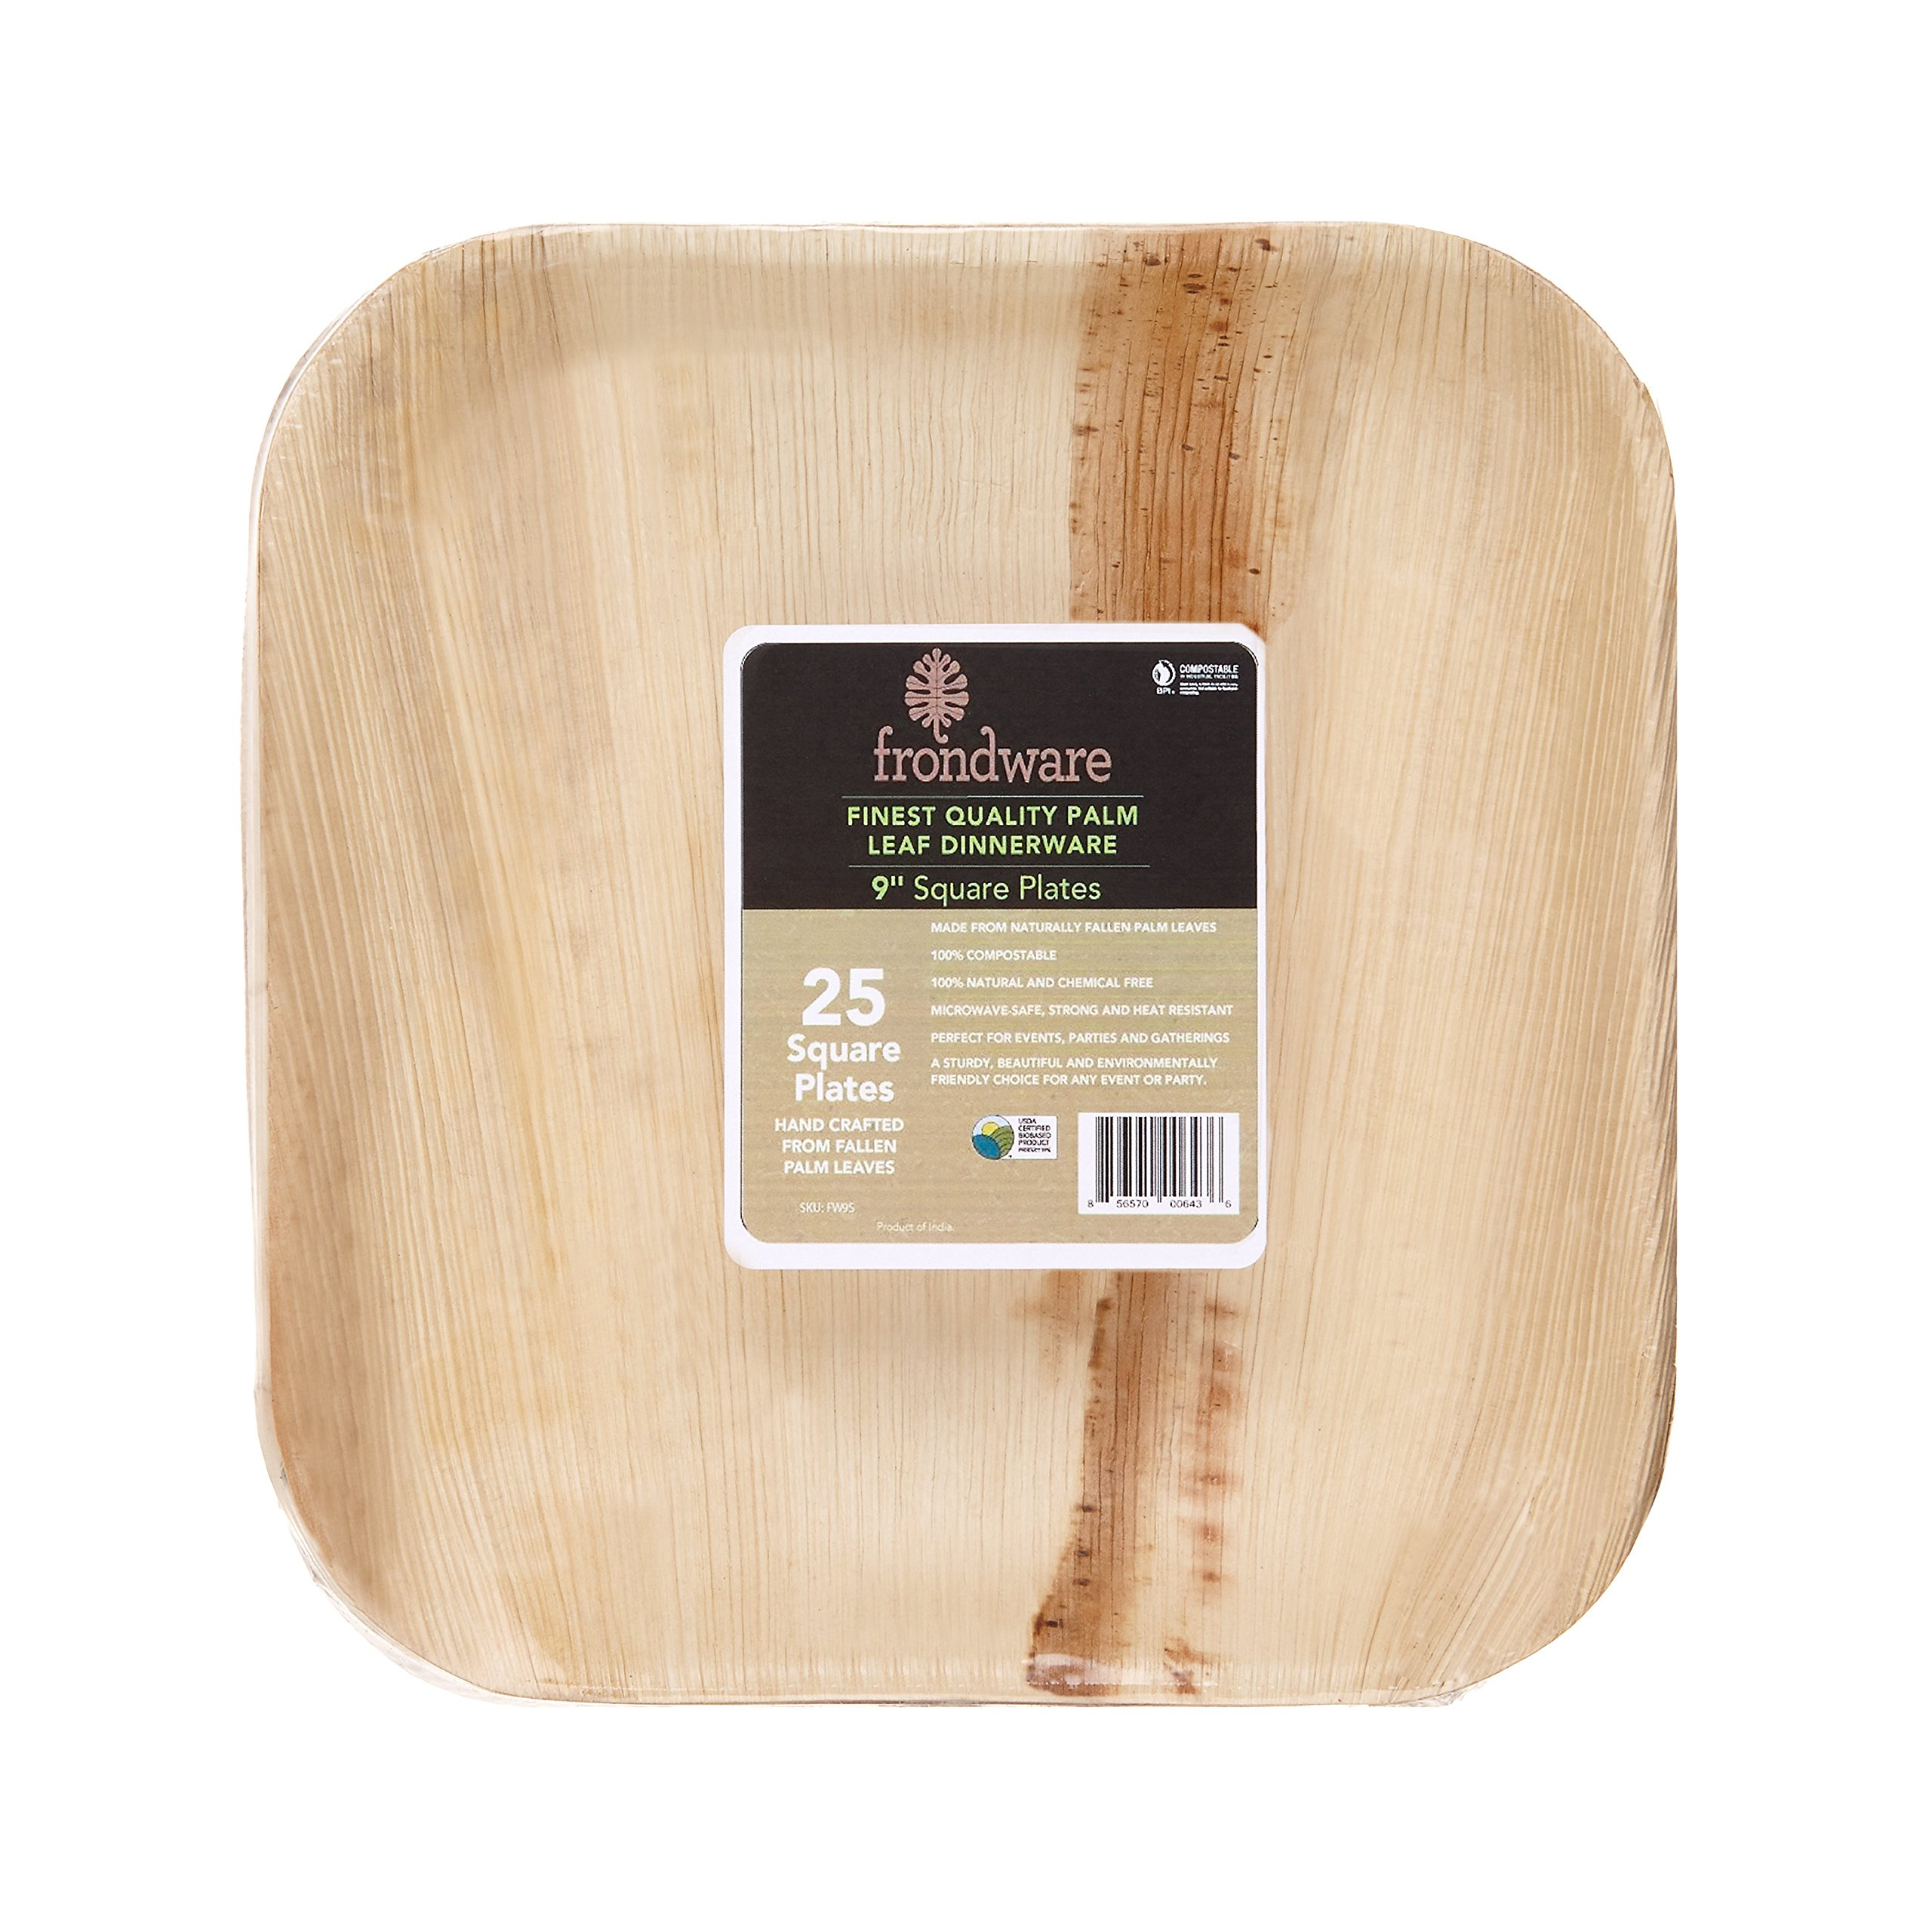 Frondware 9'' Palm Leaf Square Disposable Plates - Pack of 25 - Compostable - 100% Natural - Chemical Free - USDA Certified Biobased Product